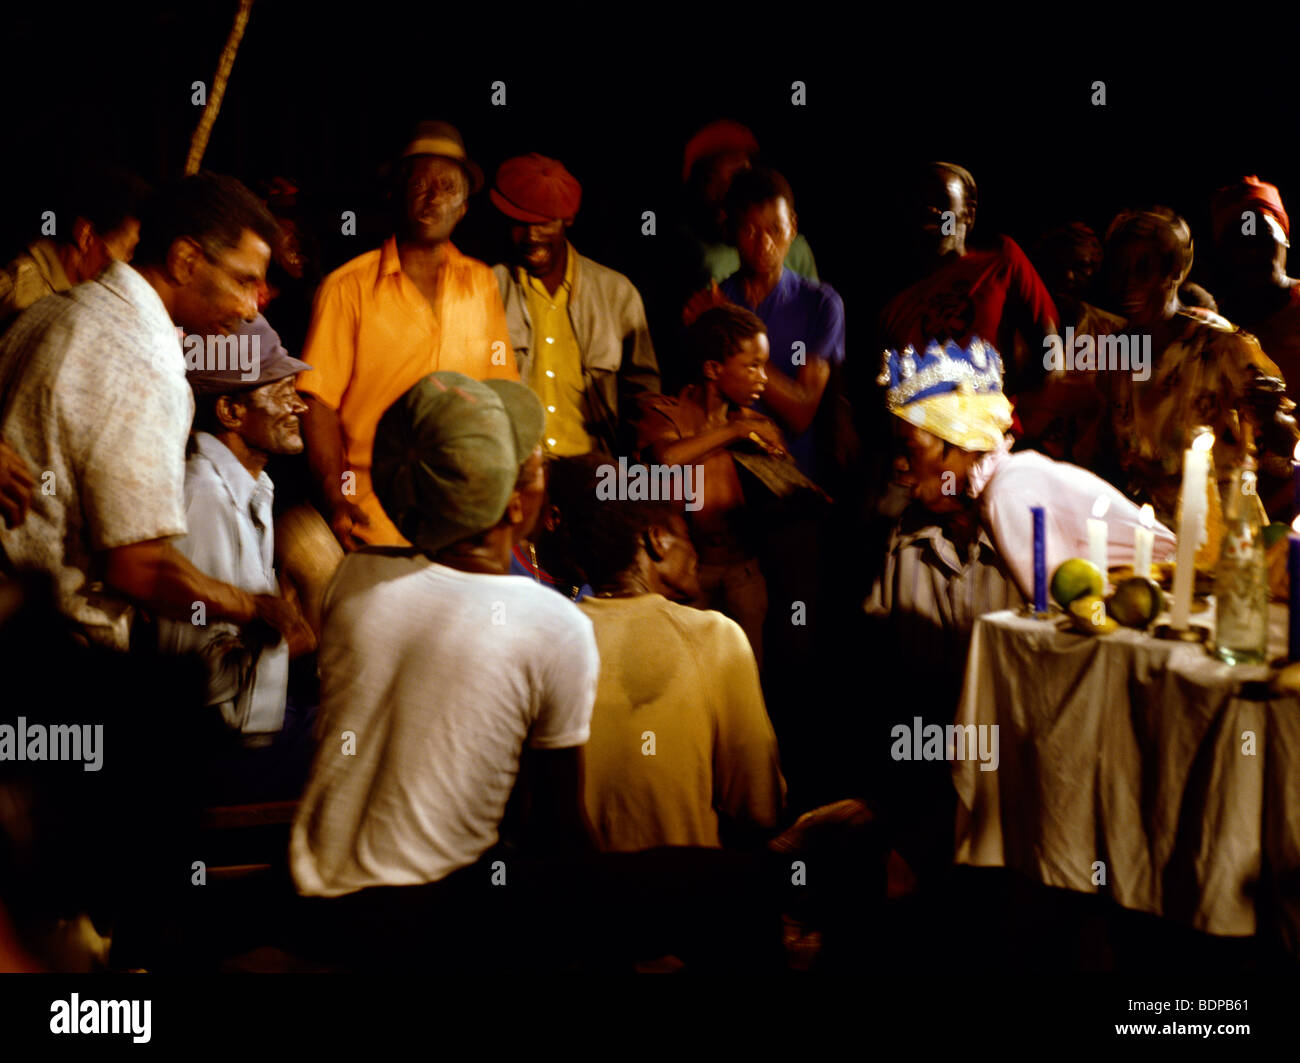 Jamaica Kumina Queen & Obeah Man In Trance Stock Photo: 25692633 - Alamy